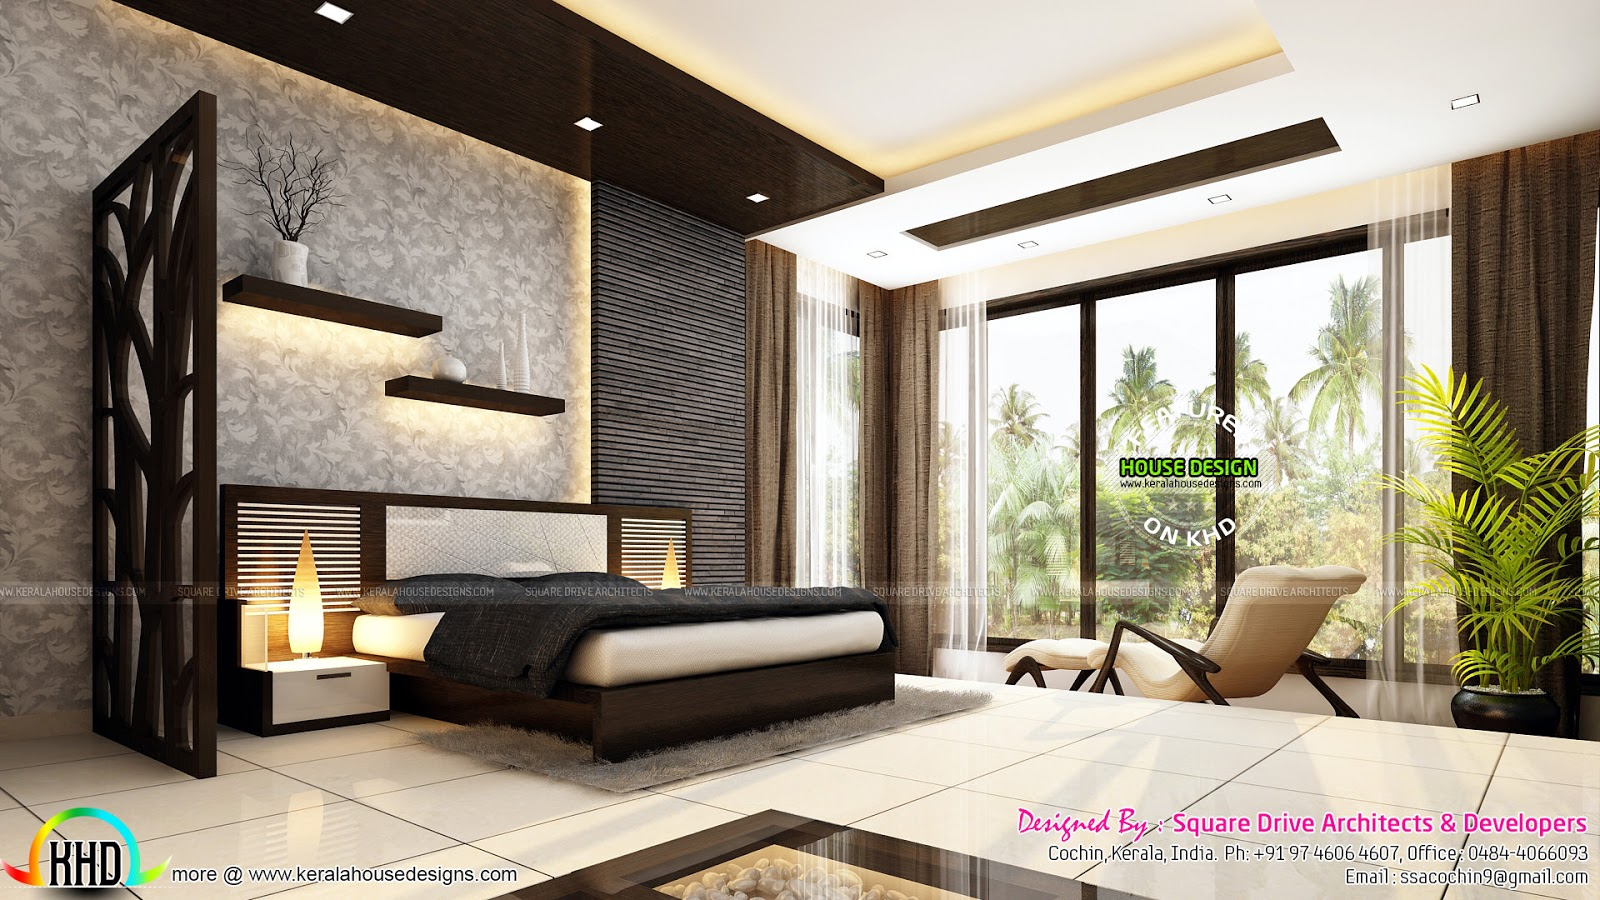 Very beautiful modern interior designs - Kerala home ... on Beautiful Room  id=80732